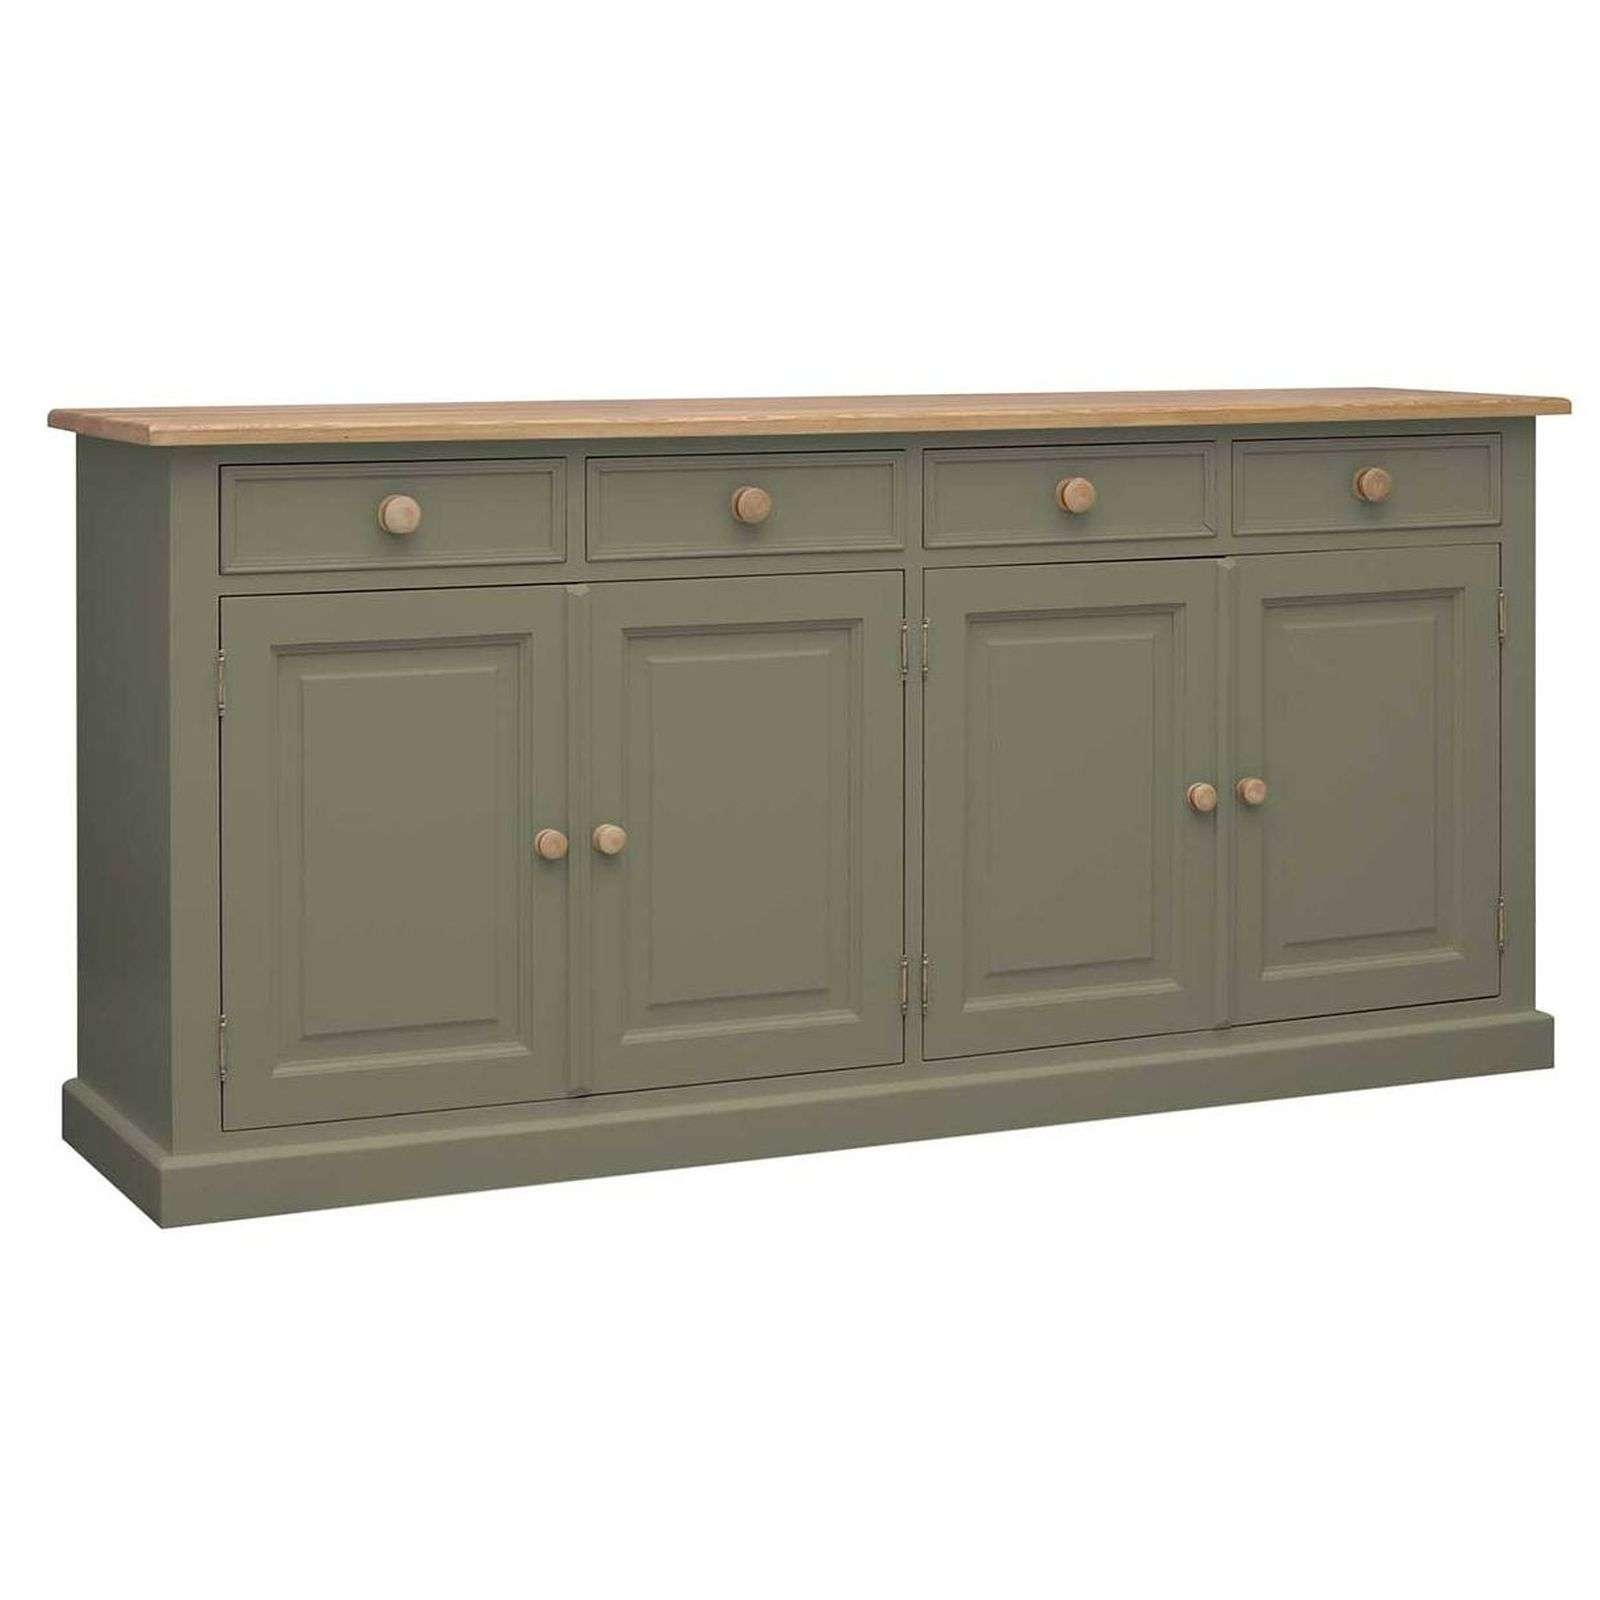 Harrogate Green Painted Pine Furniture Extra Large Sideboard In Pine Sideboards (View 5 of 20)